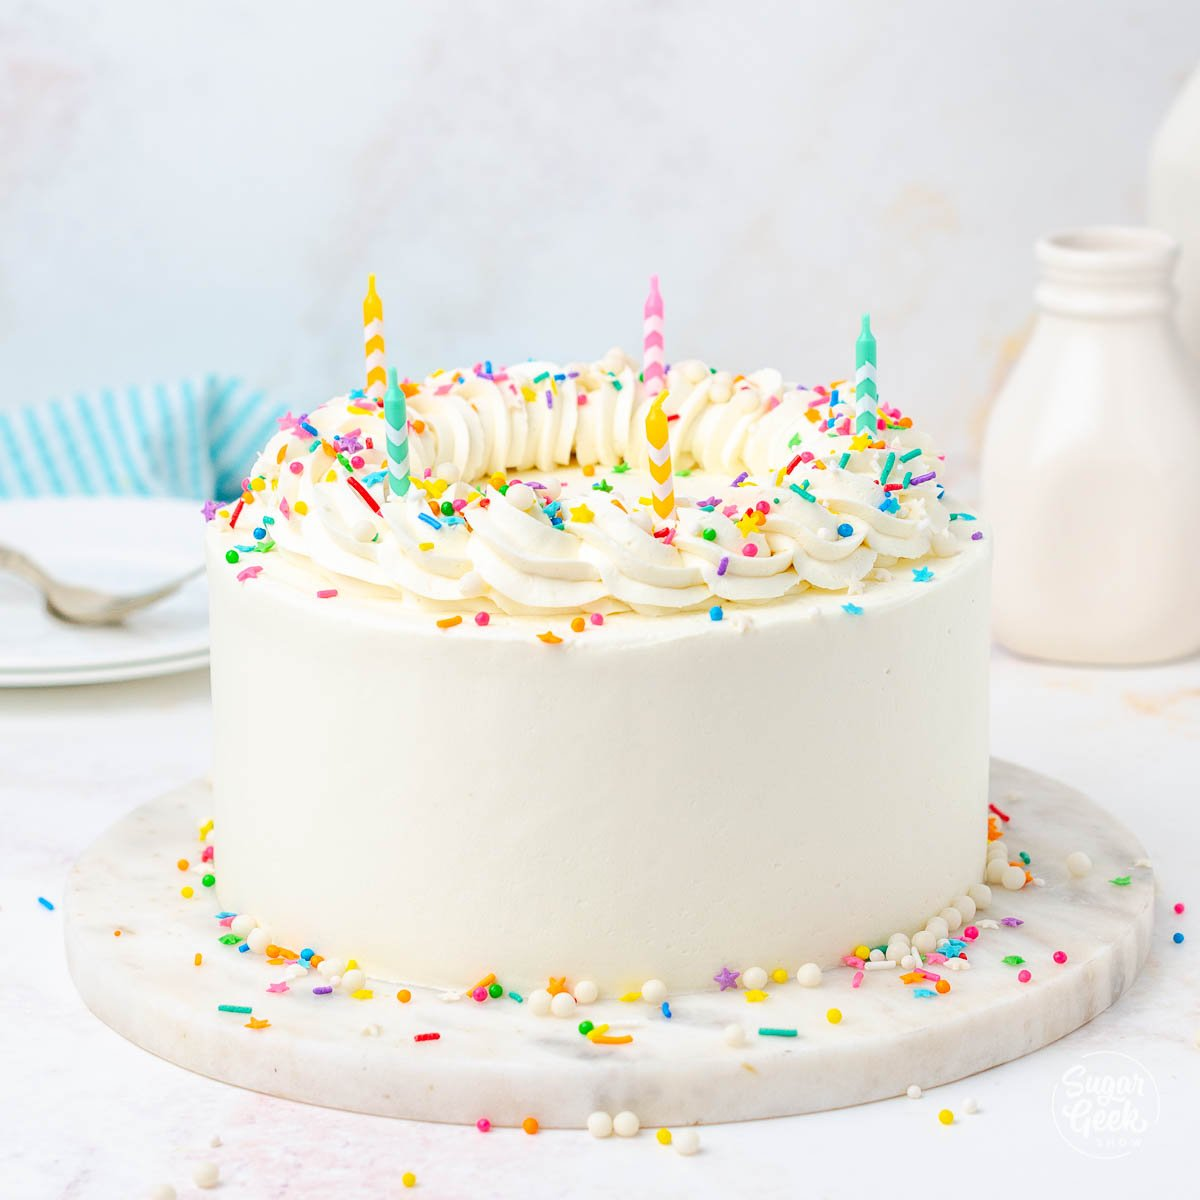 closeup of cake with white frosting and colorful sprinkles